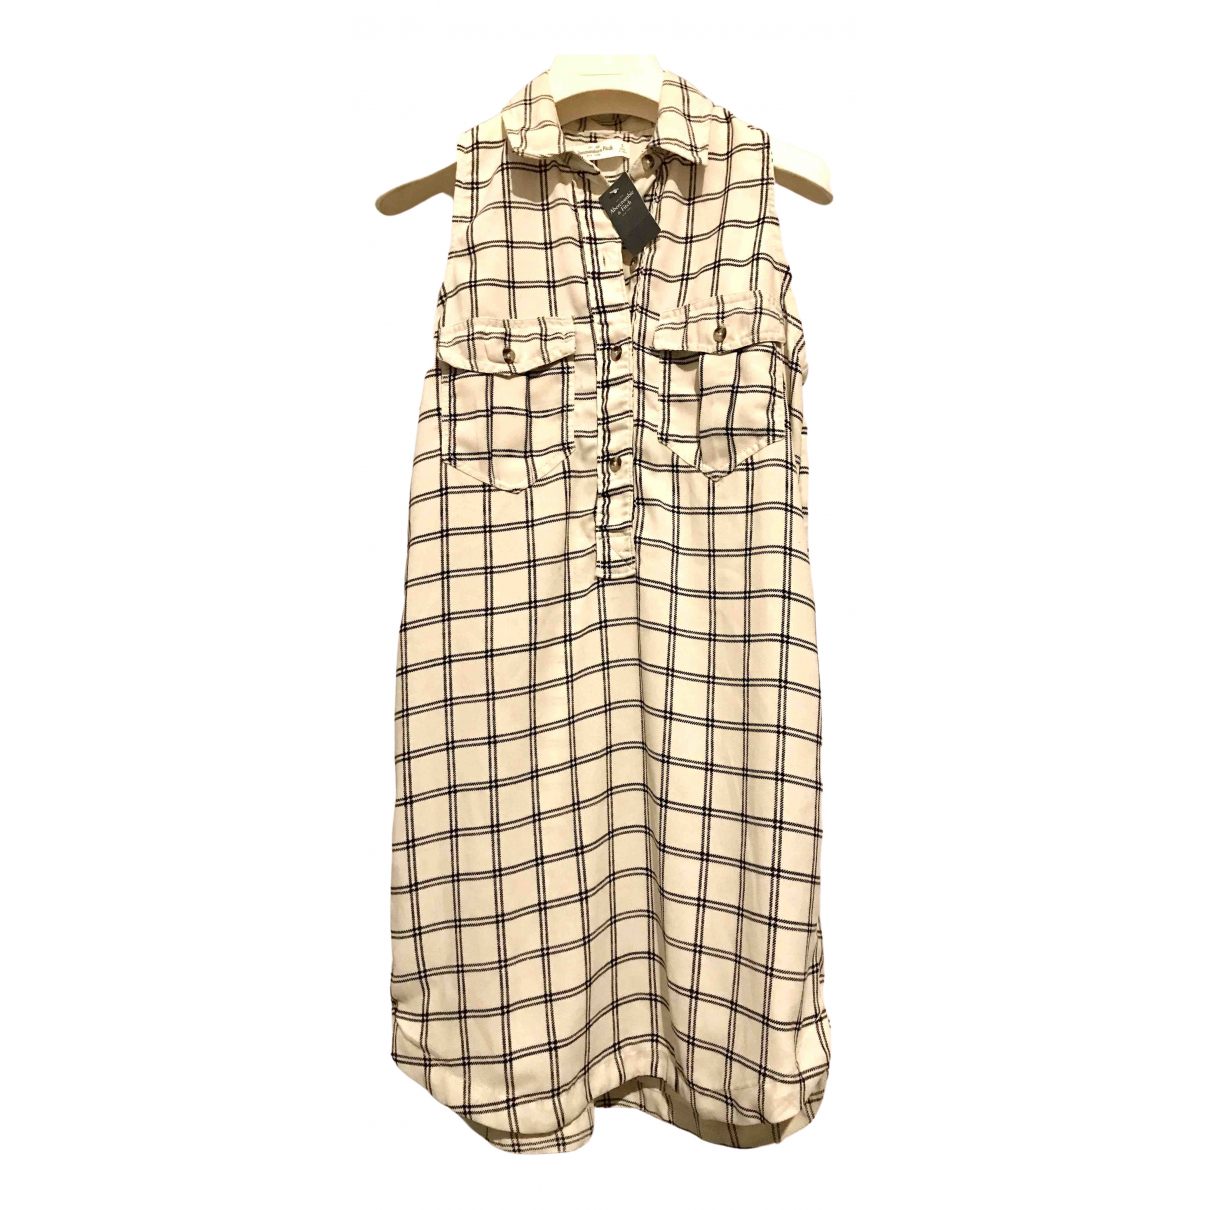 Abercrombie & Fitch \N Kleid in  Beige Polyester